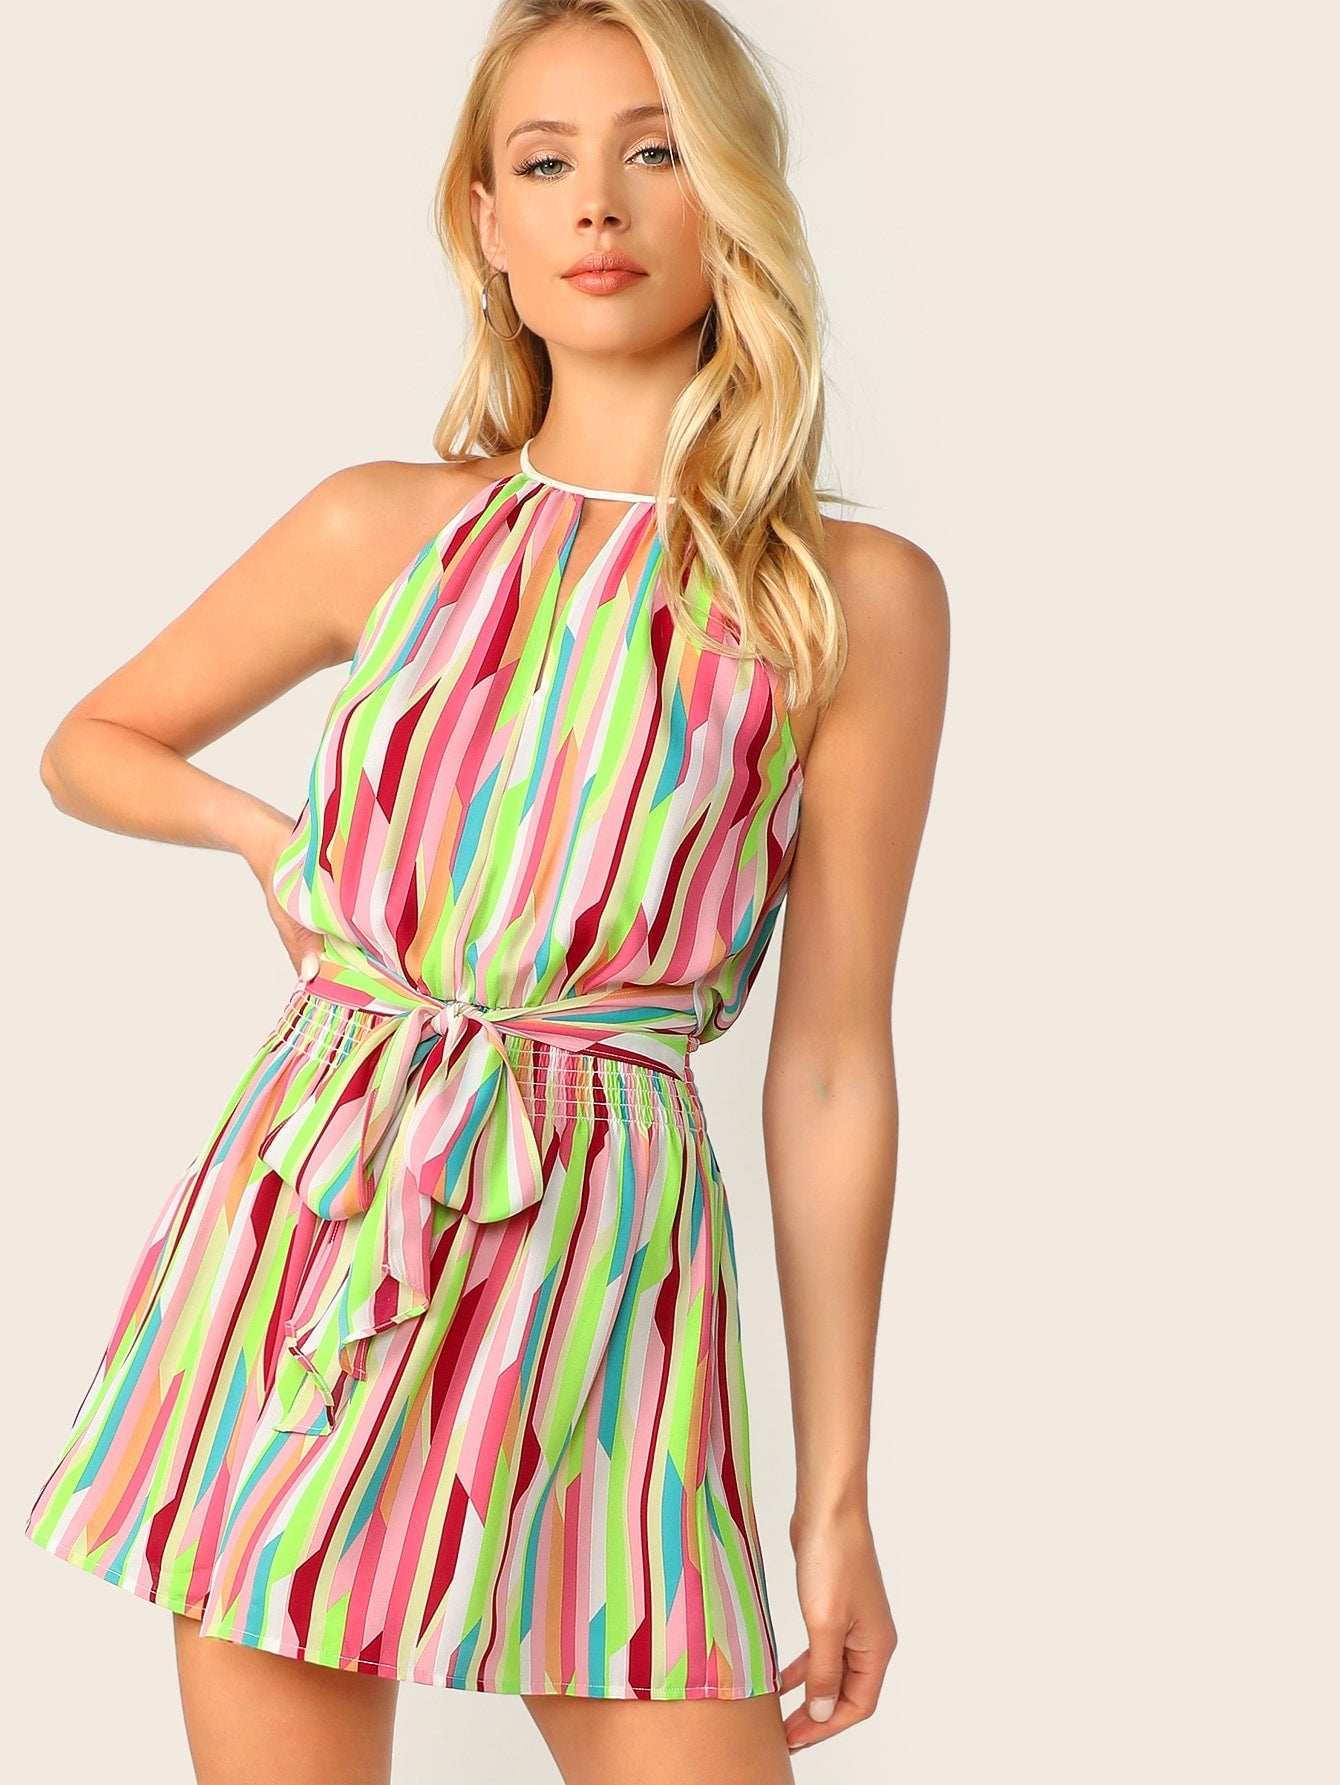 Halter Neck Multi Color Summer Dress - BrandsGuru